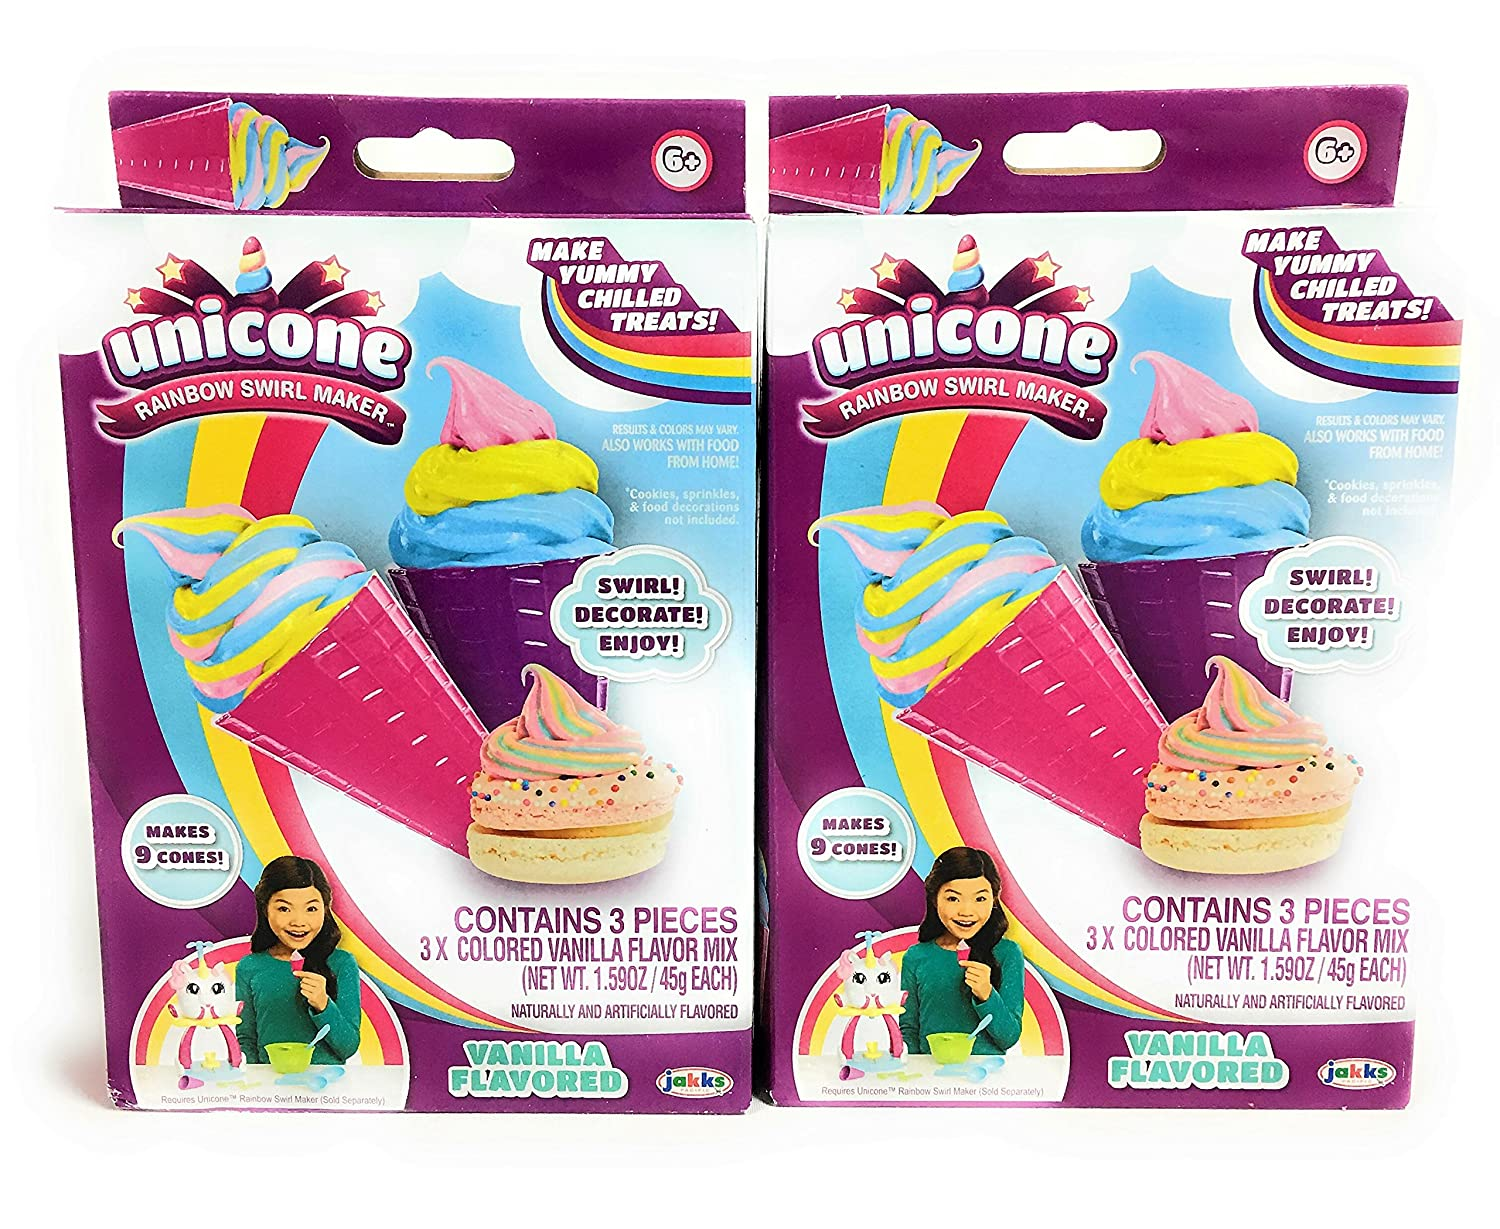 Unicone Rainbow Swirl Maker | Vanilla Flavored Mix | Bundle Set of 2 Boxes | Total of 6